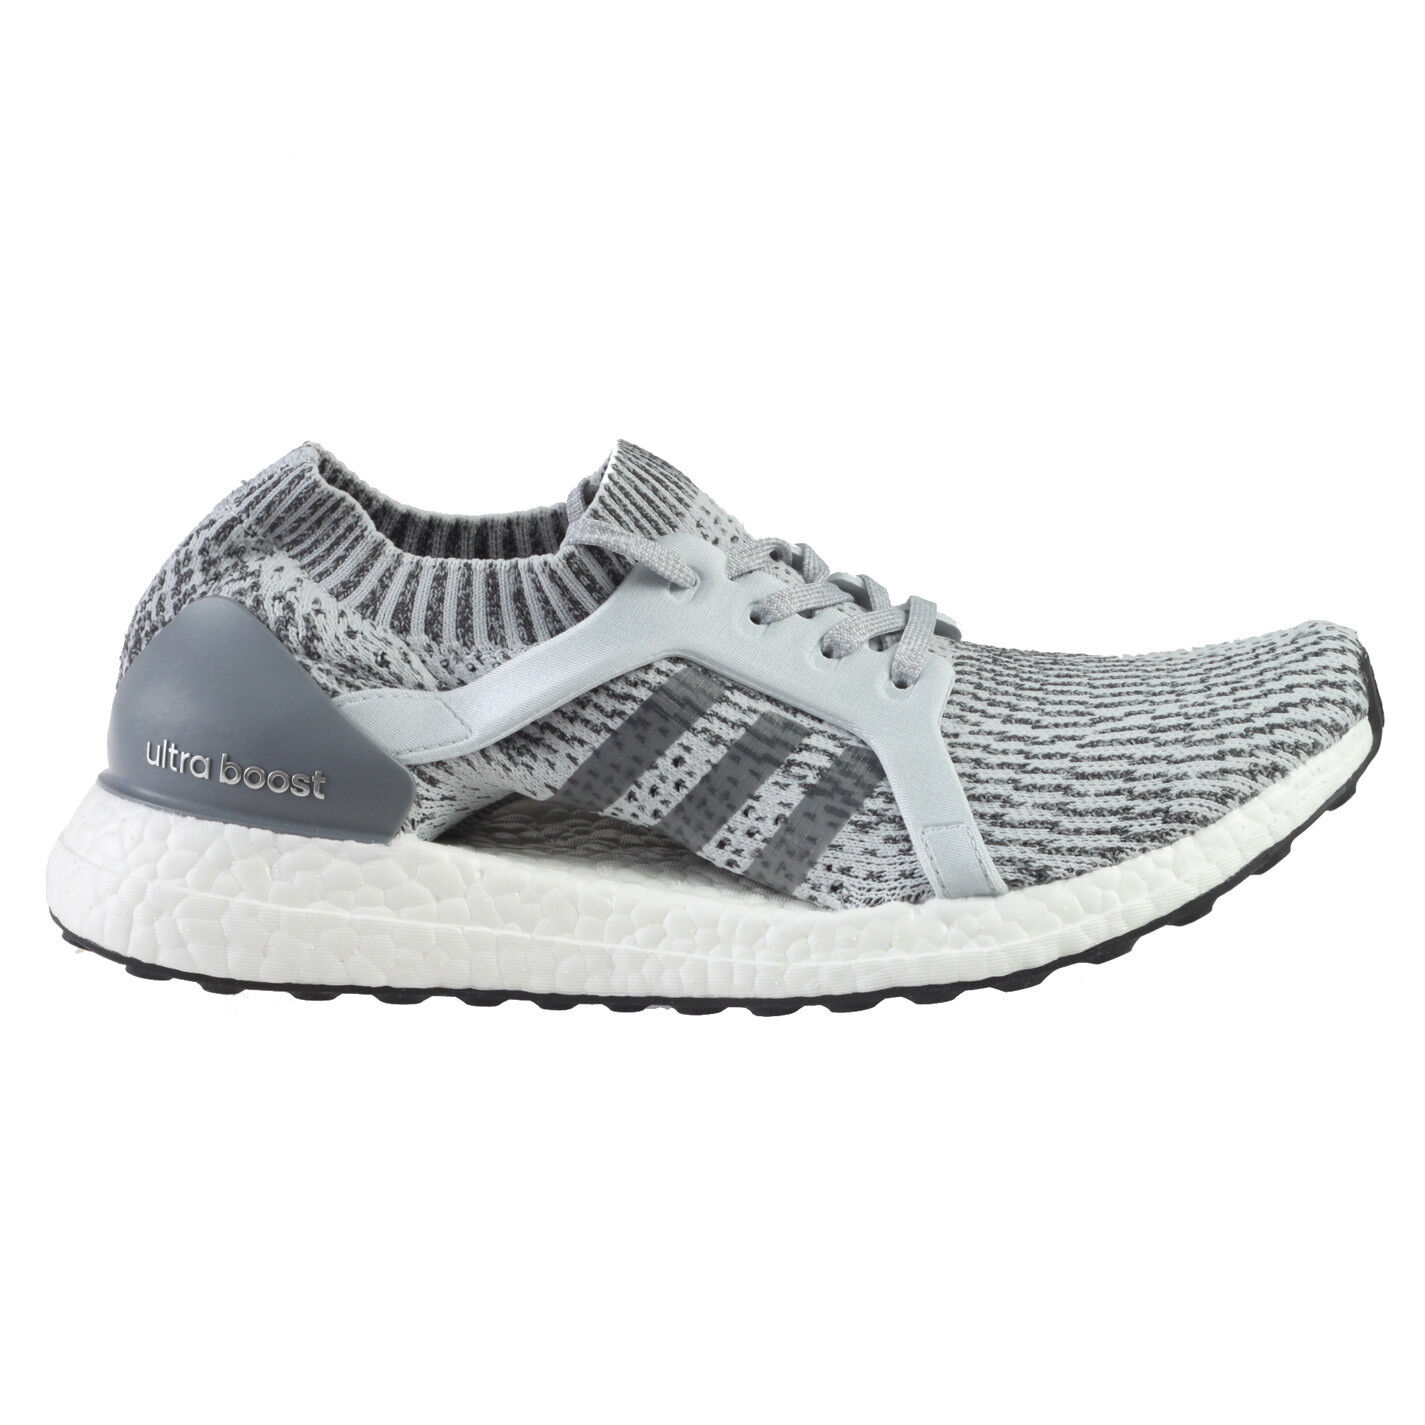 Adidas Ultra Boost X Womens BB1695 Clear Grey Primeknit Running Shoes Comfortable